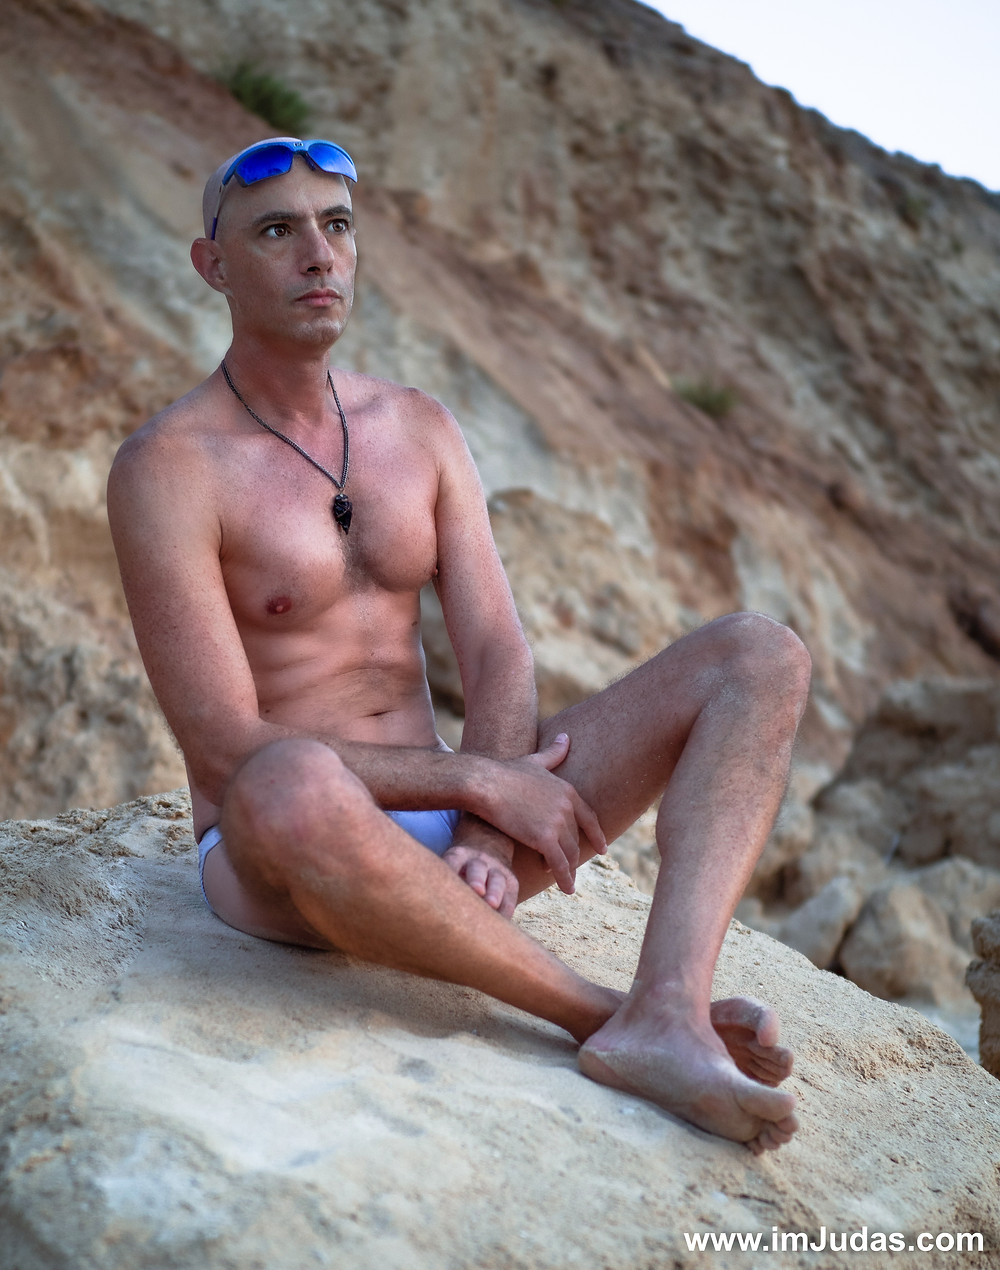 Wearing speedos at the beach, showing my large pecs